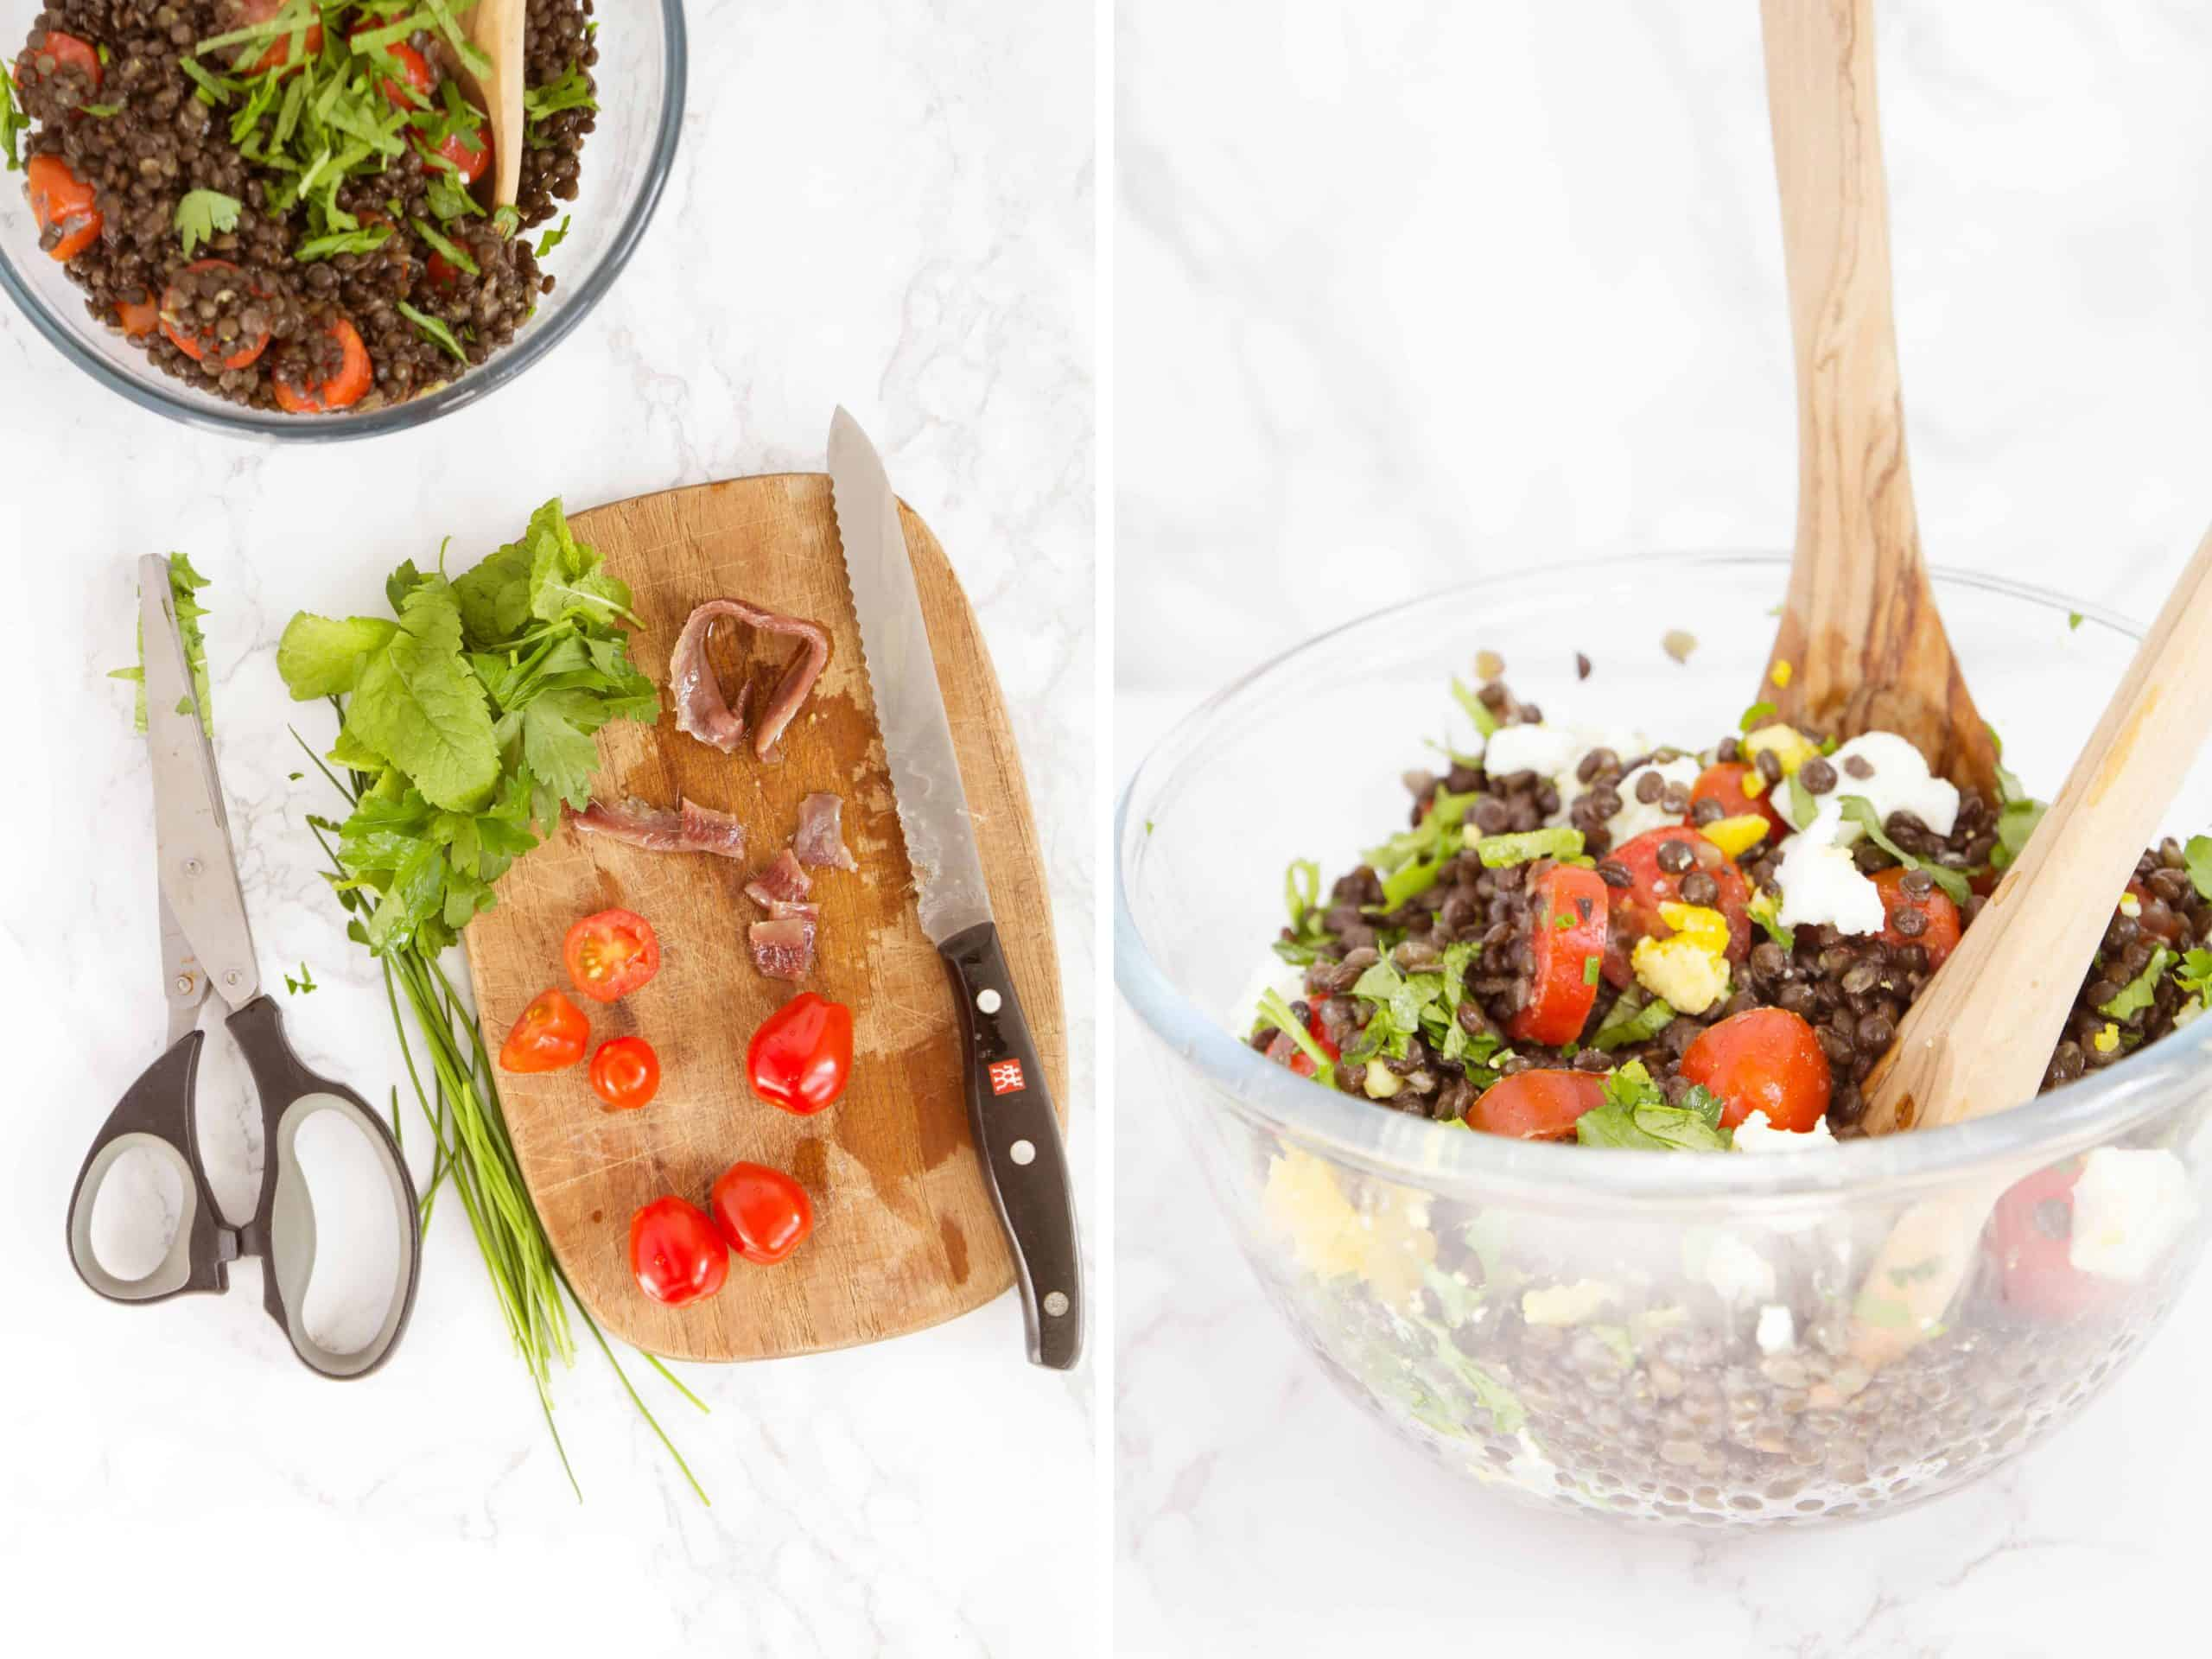 A chopping board with herbs, anchovies and tomatoes and a bowl full of lentil salad with two wooden spoons.